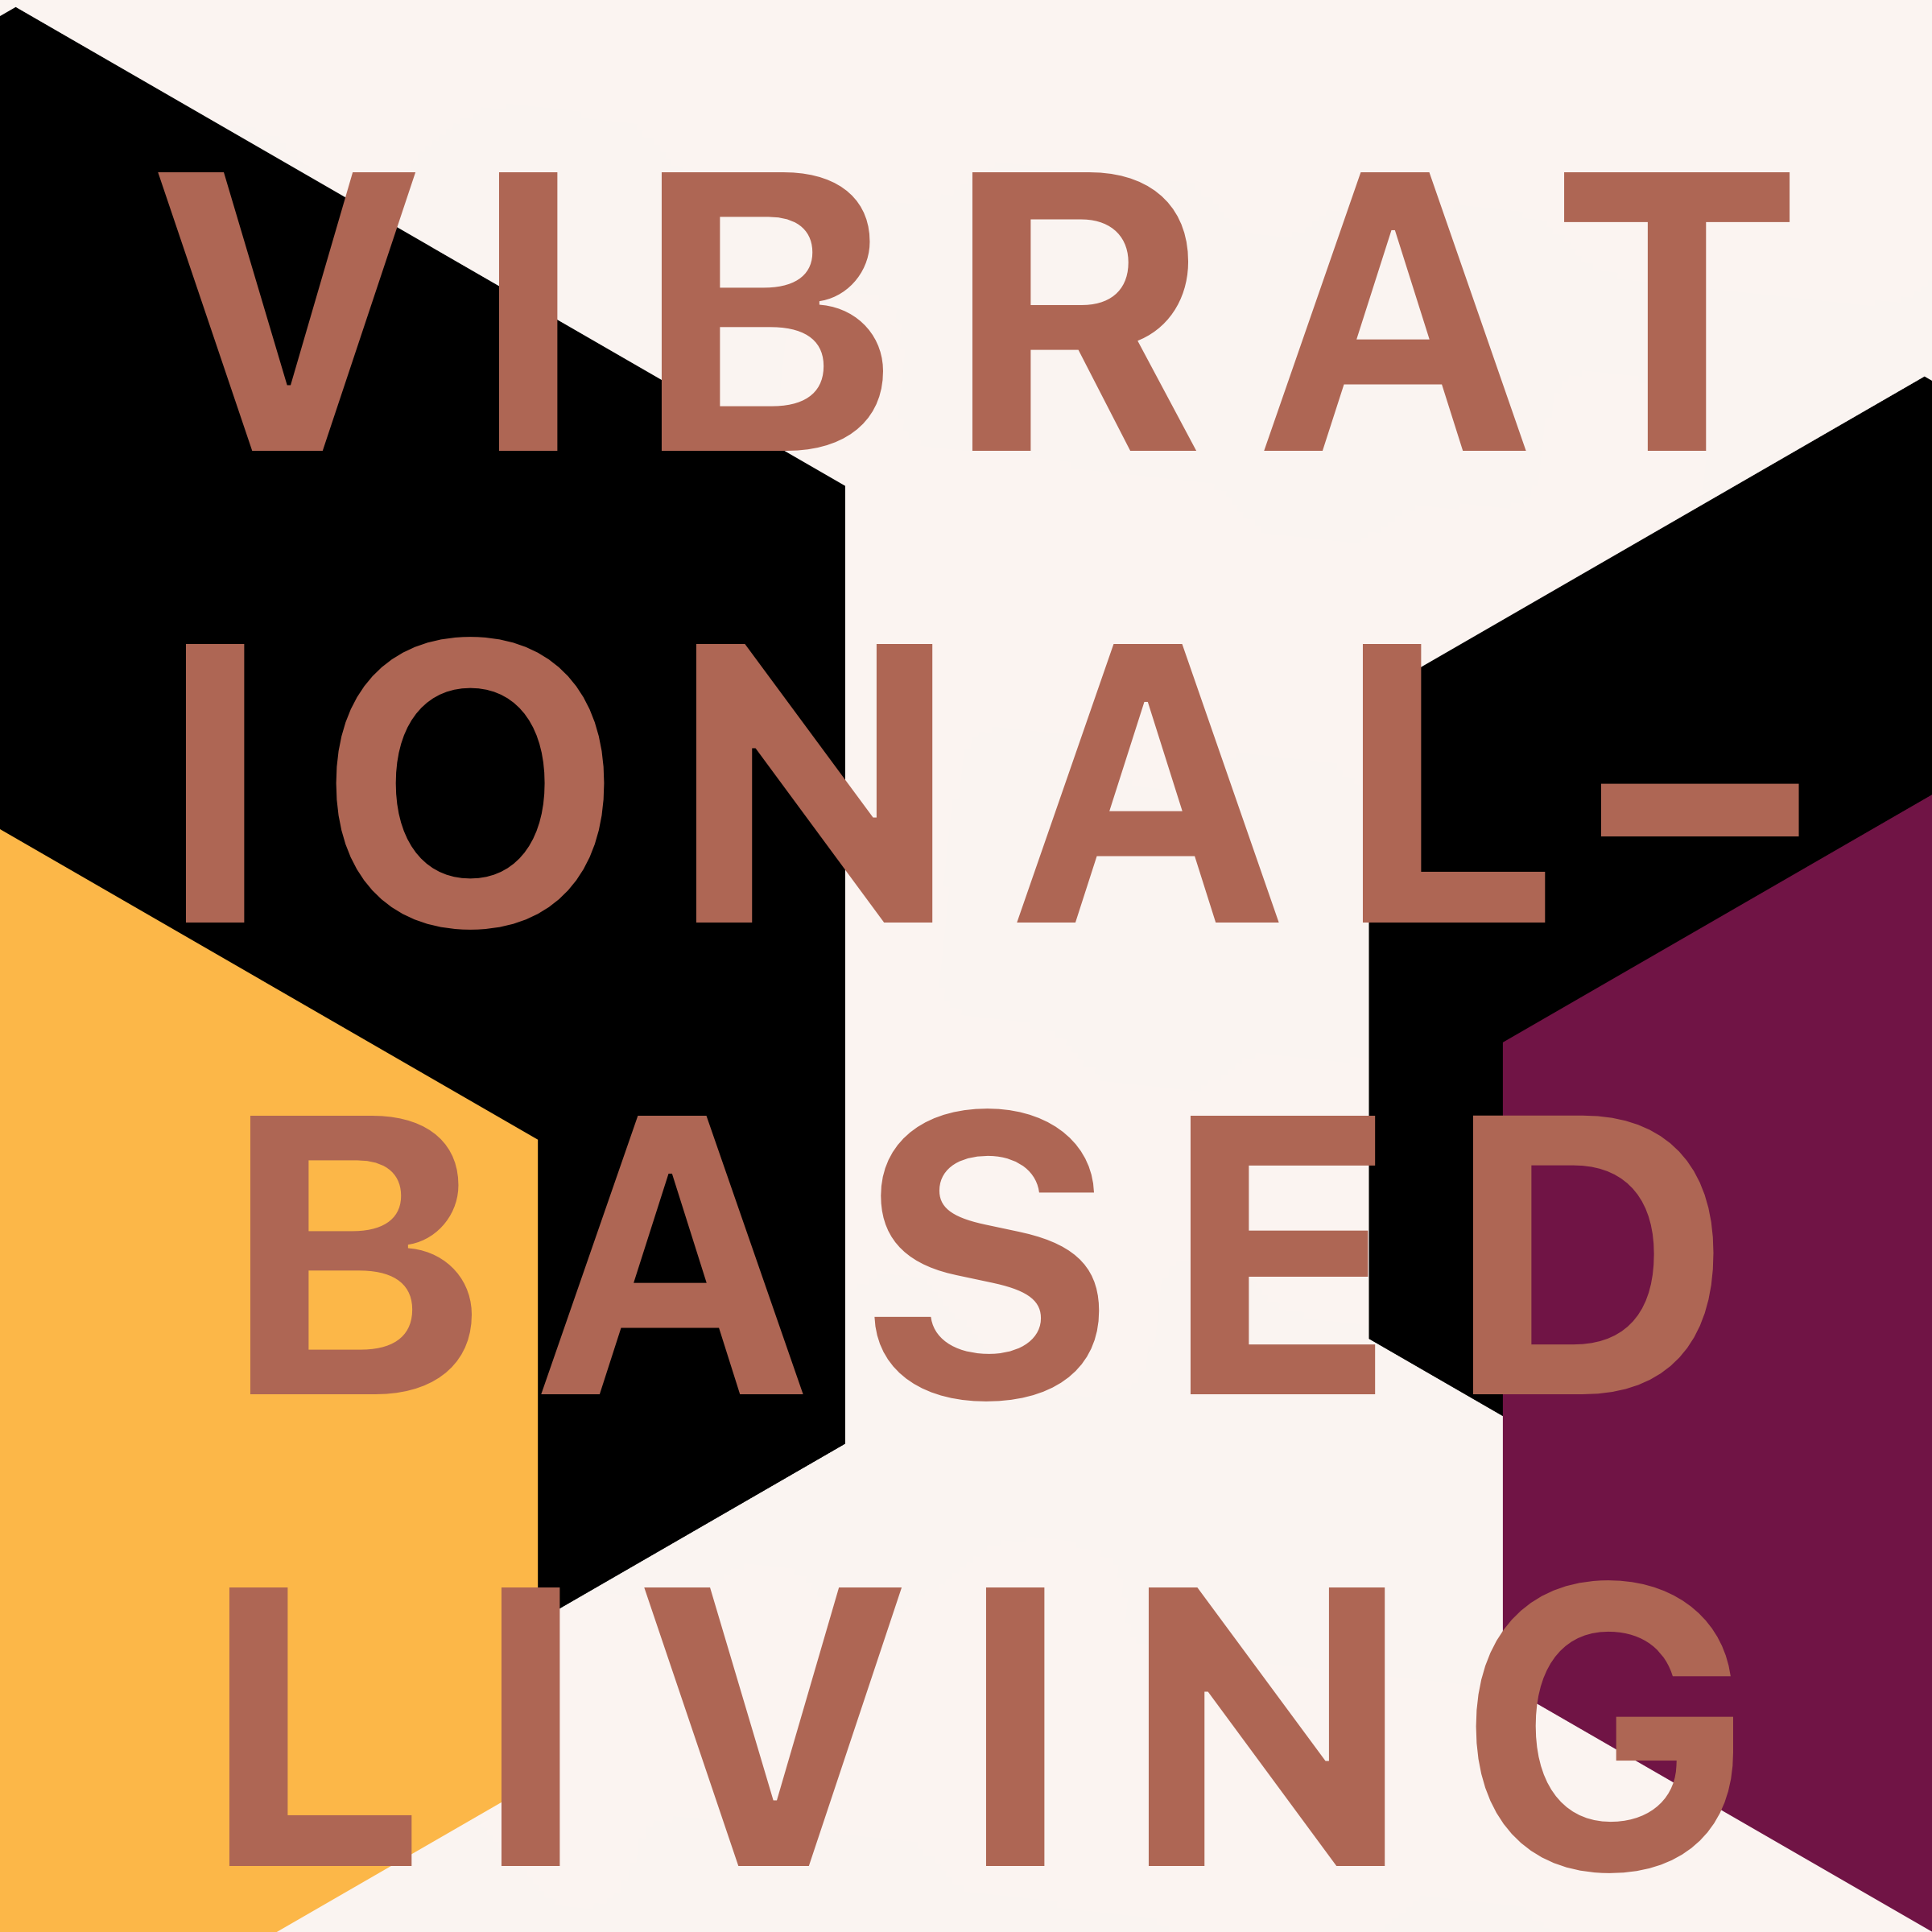 Vibrational-Based Living Class - Self-care is how you take your power back.Learn the knowledge, tools, and skills of Vibrational-Based Living in order to vibrate higher daily. There's higher path for you, and you can access it. Are you ready to access, explore, expand, and elevate?Of course you are! Vibrating higher changes the game.See you in class!